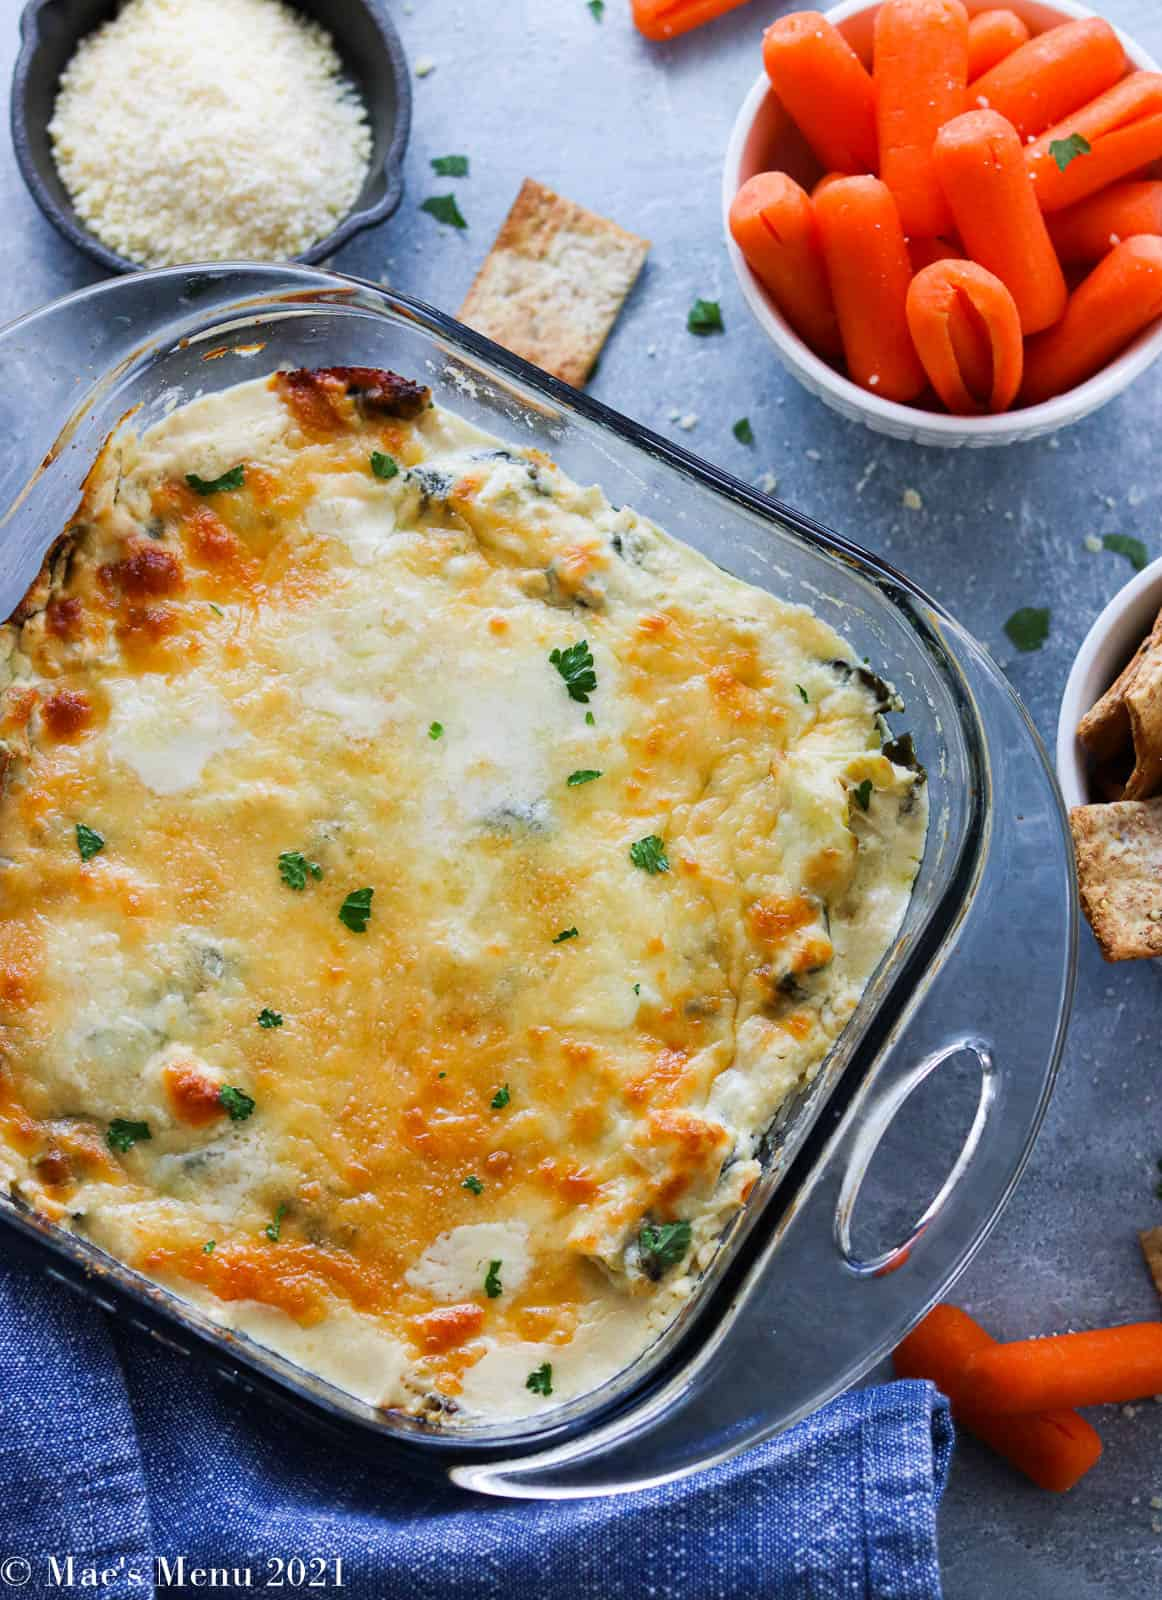 An overhead shot of a pan of spinach artichoke dip surrounded by cups of carrots, crackers, cheese, and more